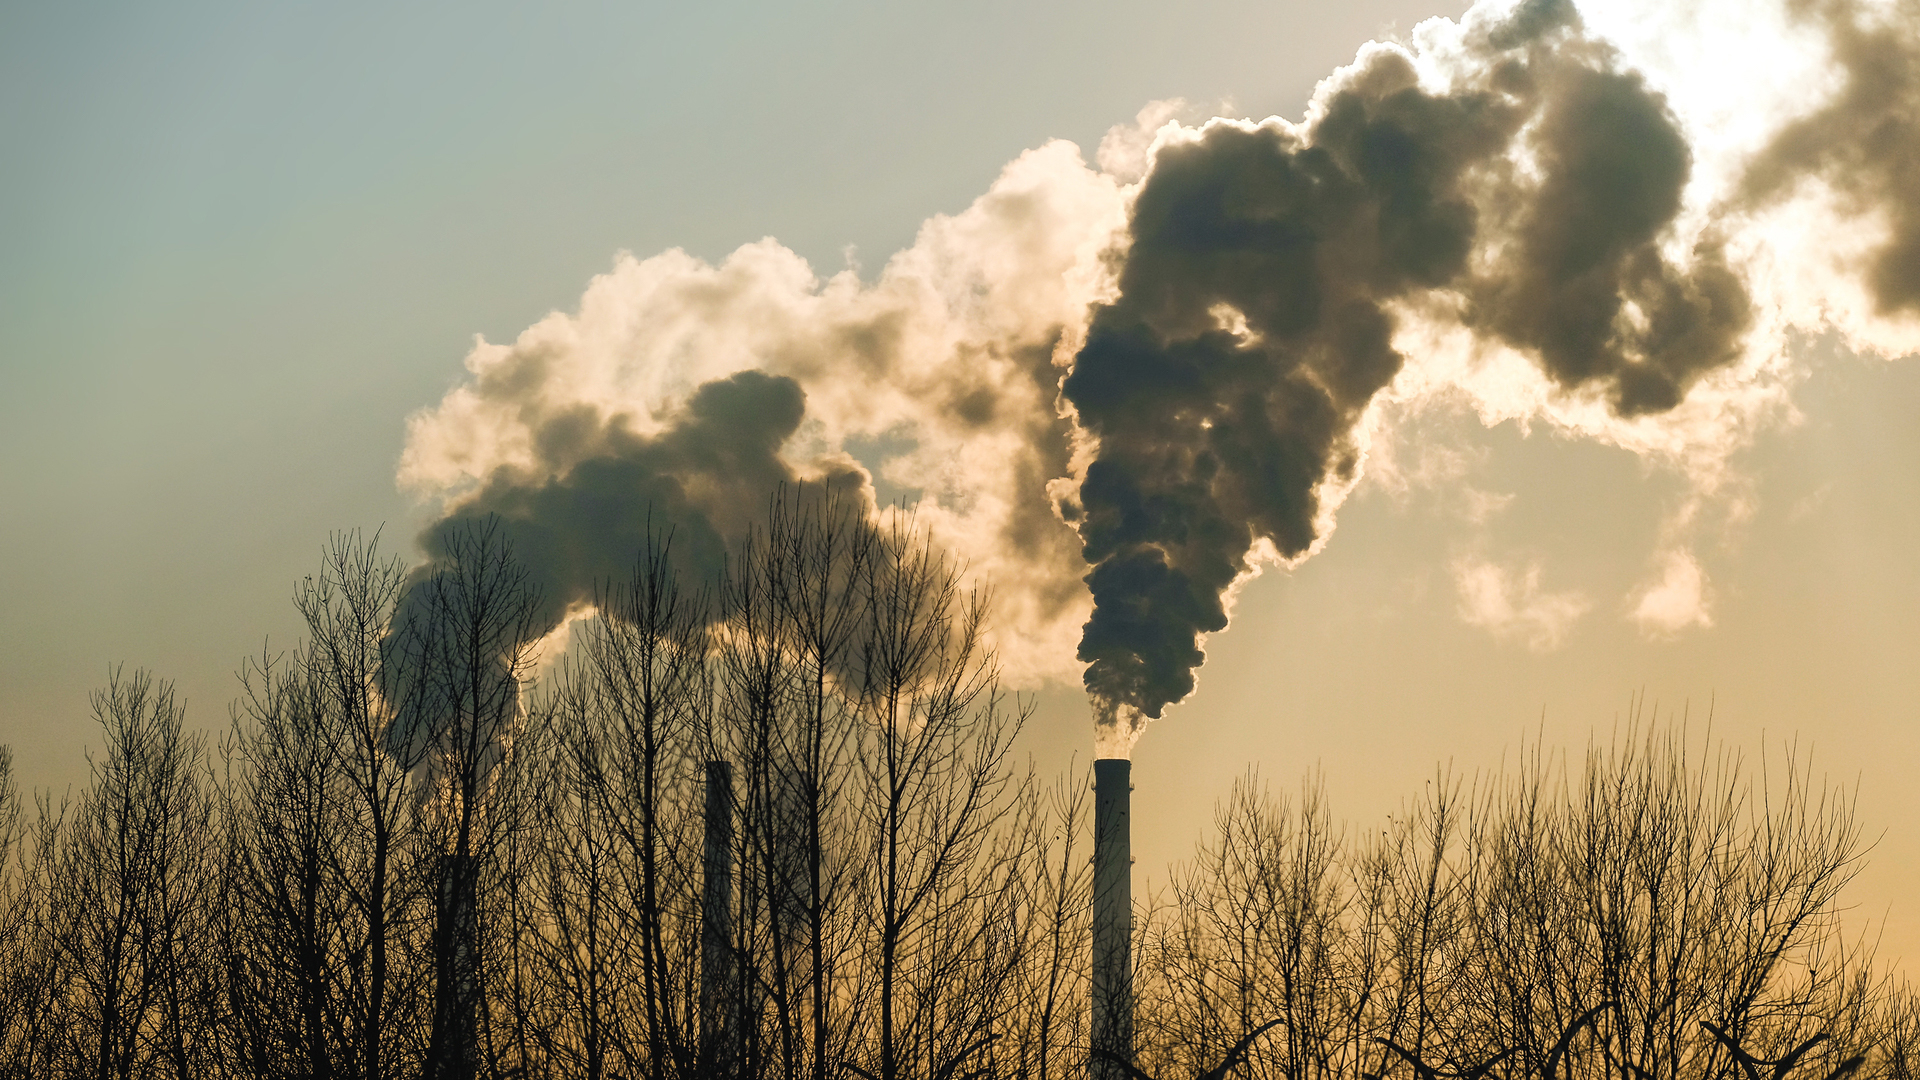 Dutch court orders Shell to reduce CO2 emissions